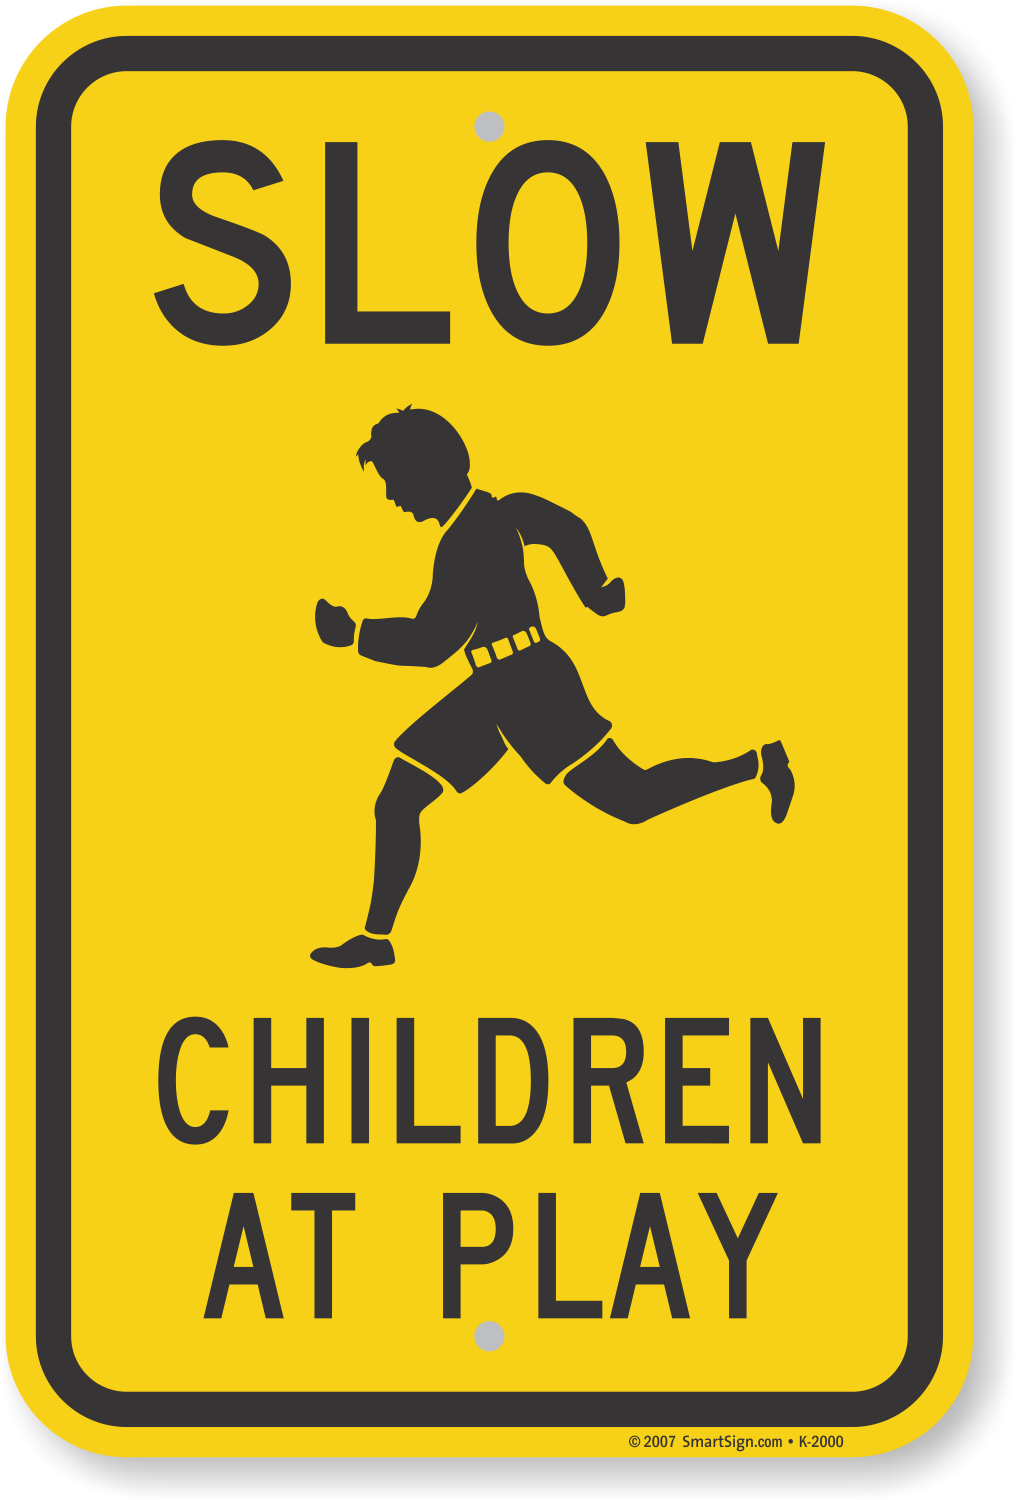 slow-children-at-play-sign-k-2000.png